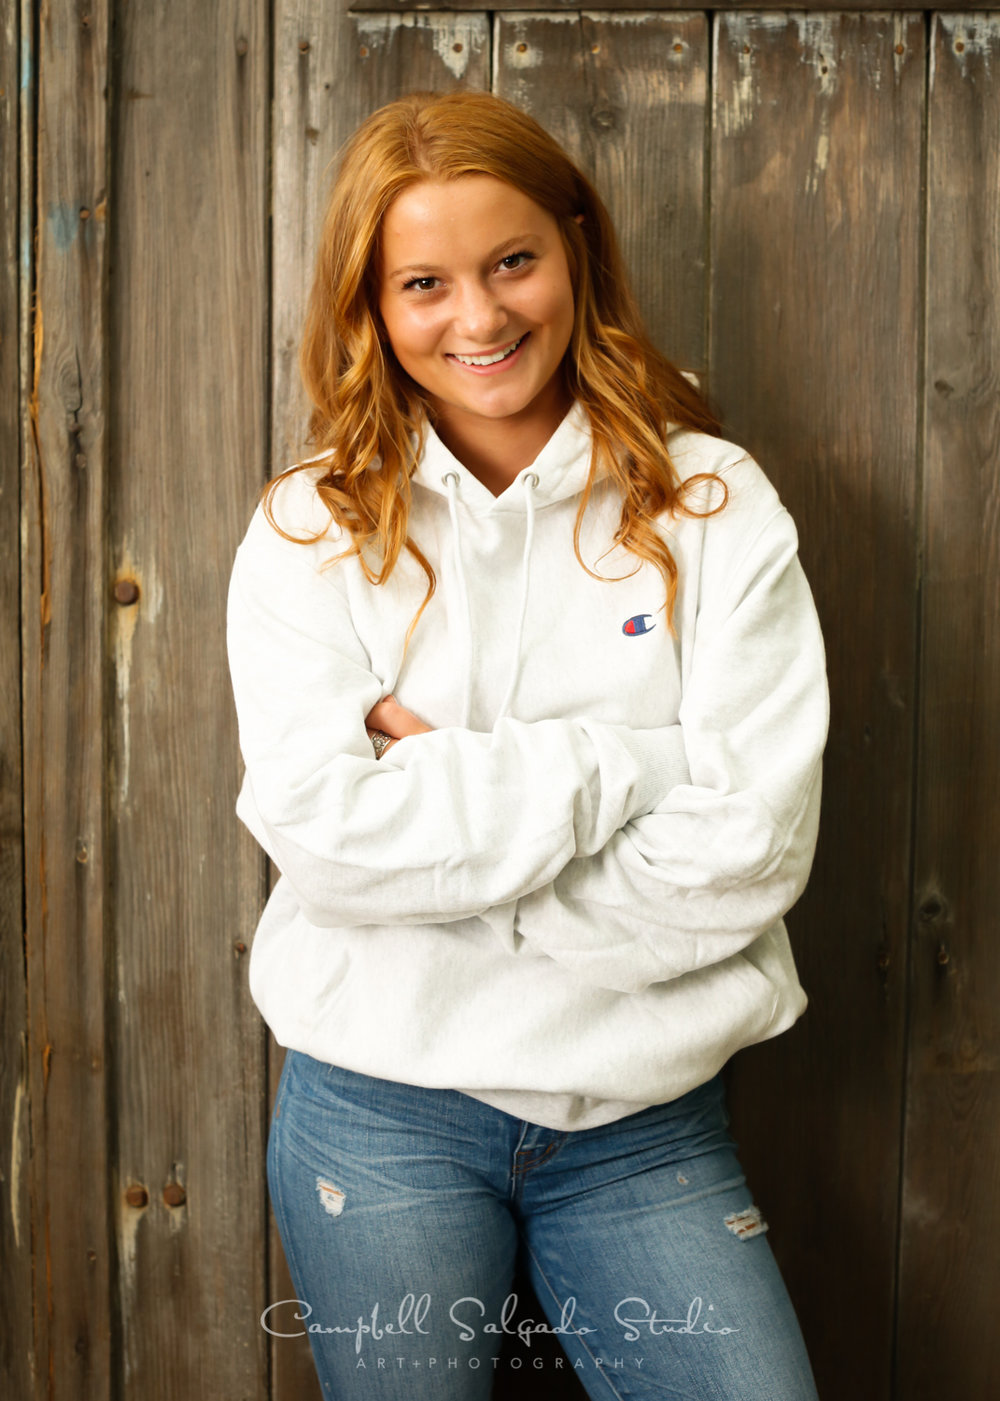 Portrait of high school senior on barn doors background by teen photographers at Campbell Salgado Studio in Portland, Oregon.